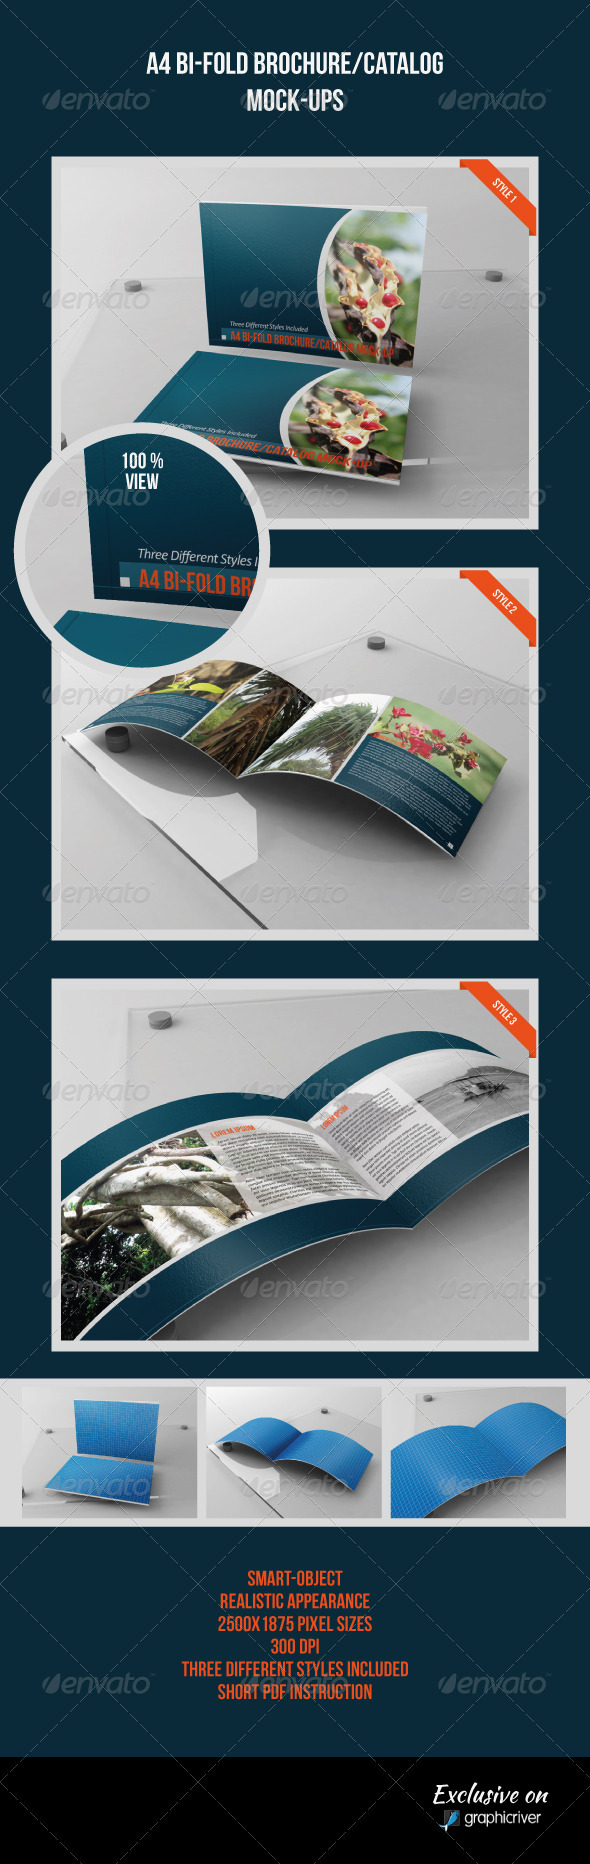 GraphicRiver A4 Bi-Fold Catalog Brochure Mock-Ups 3711411